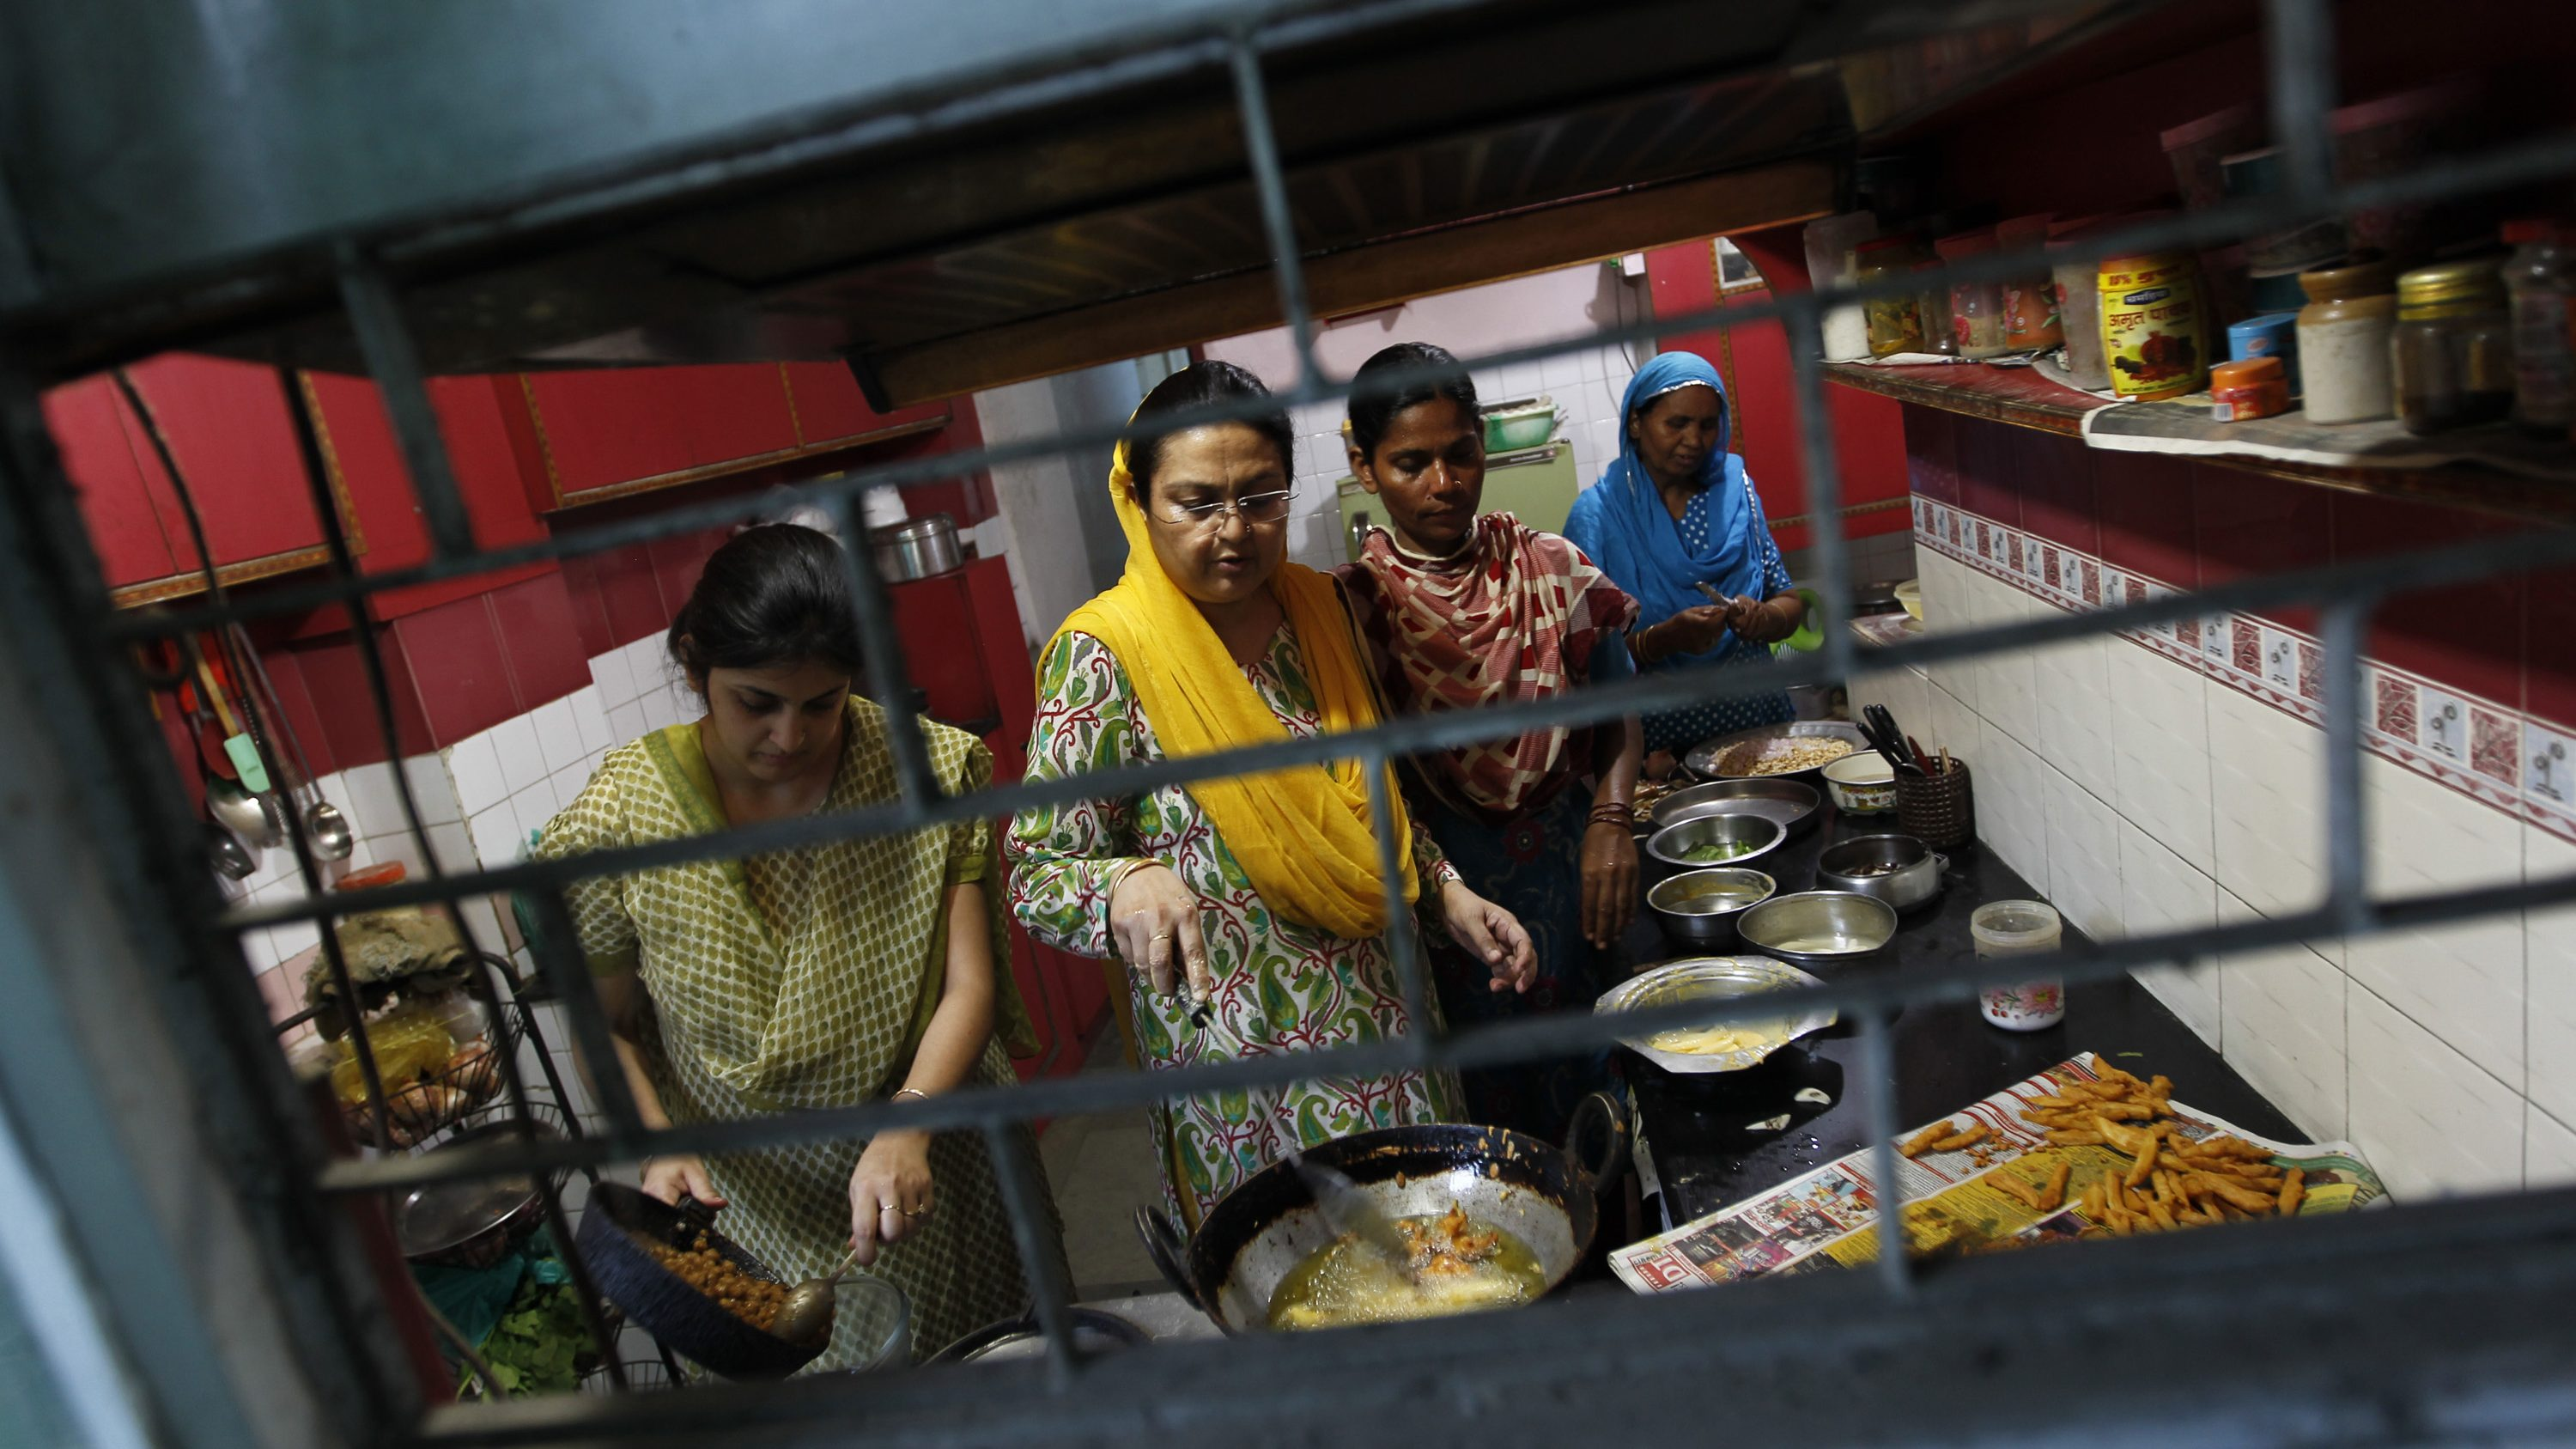 Muslim women prepare the Iftar (fast-breaking) meal during the holy month of Ramadan at their ancestral home called Sharif Manzil, which is one of the oldest haveli (mansion), in the old quarters of Delhi August 16, 2012. REUTERS/Mansi Thapliyal (INDIA - Tags: RELIGION SOCIETY) - RTR36WKJ